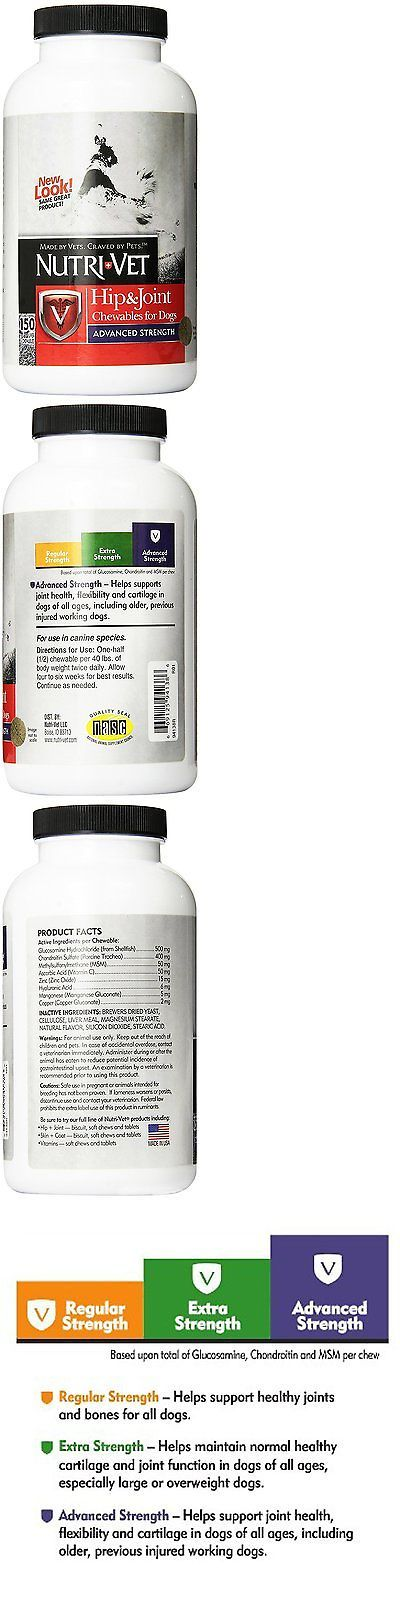 Vitamins and Supplements 134754: Nutri-Vet Hip And Joint Advanced Strength Chewables For Dogs, 150-Count -> BUY IT NOW ONLY: $33.24 on eBay!